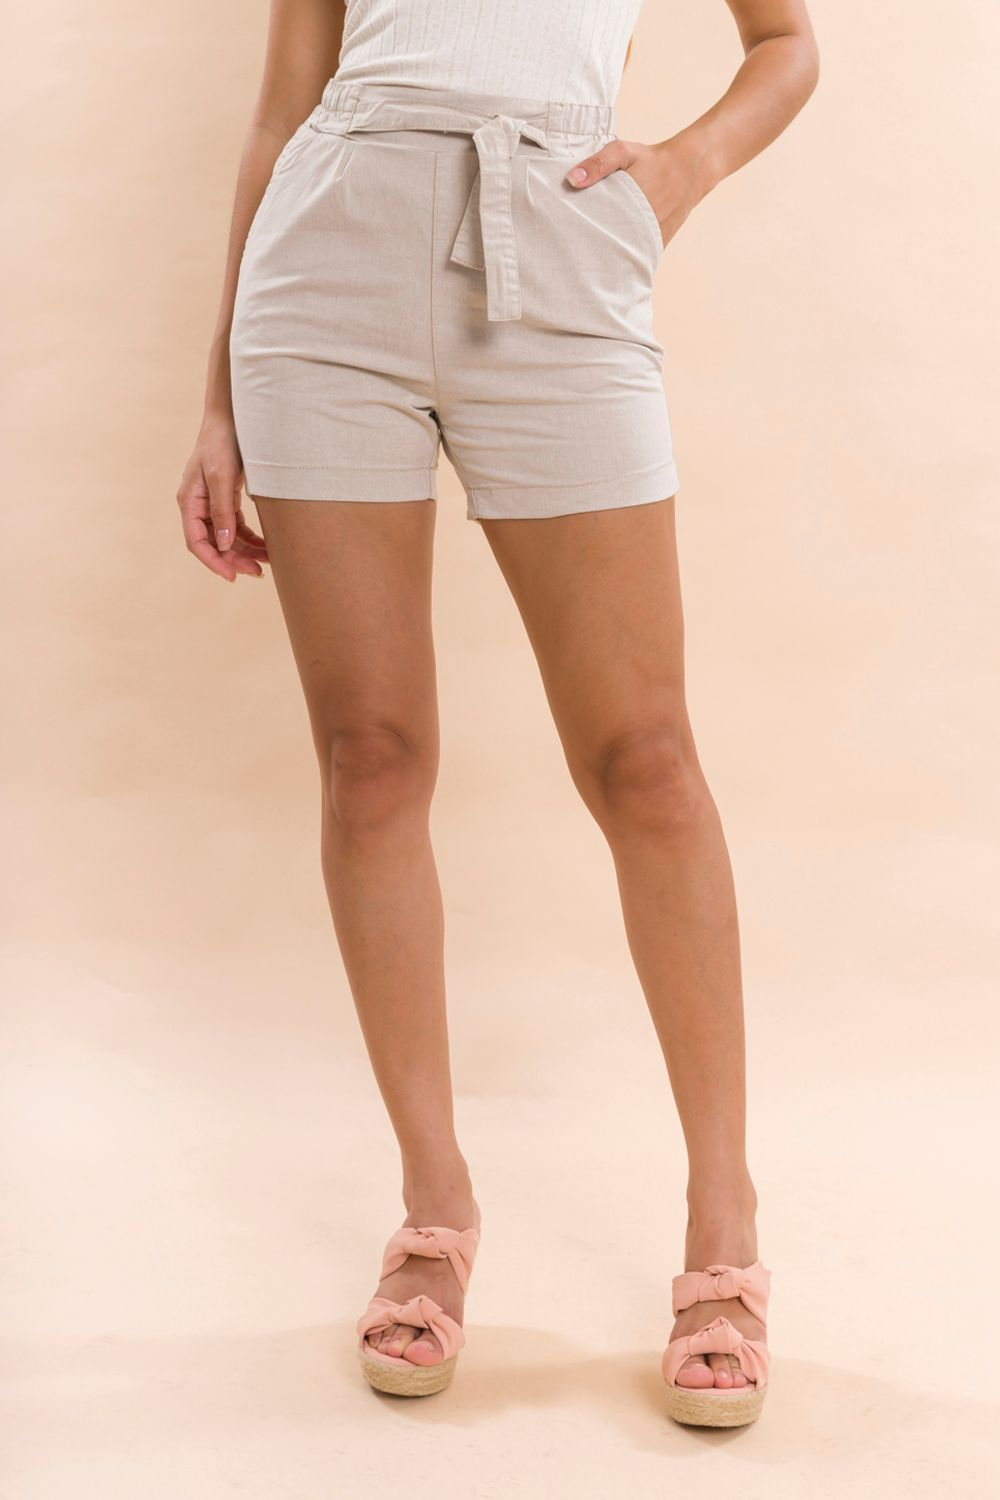 SHORTS SARJA CLOCHARD CINDY